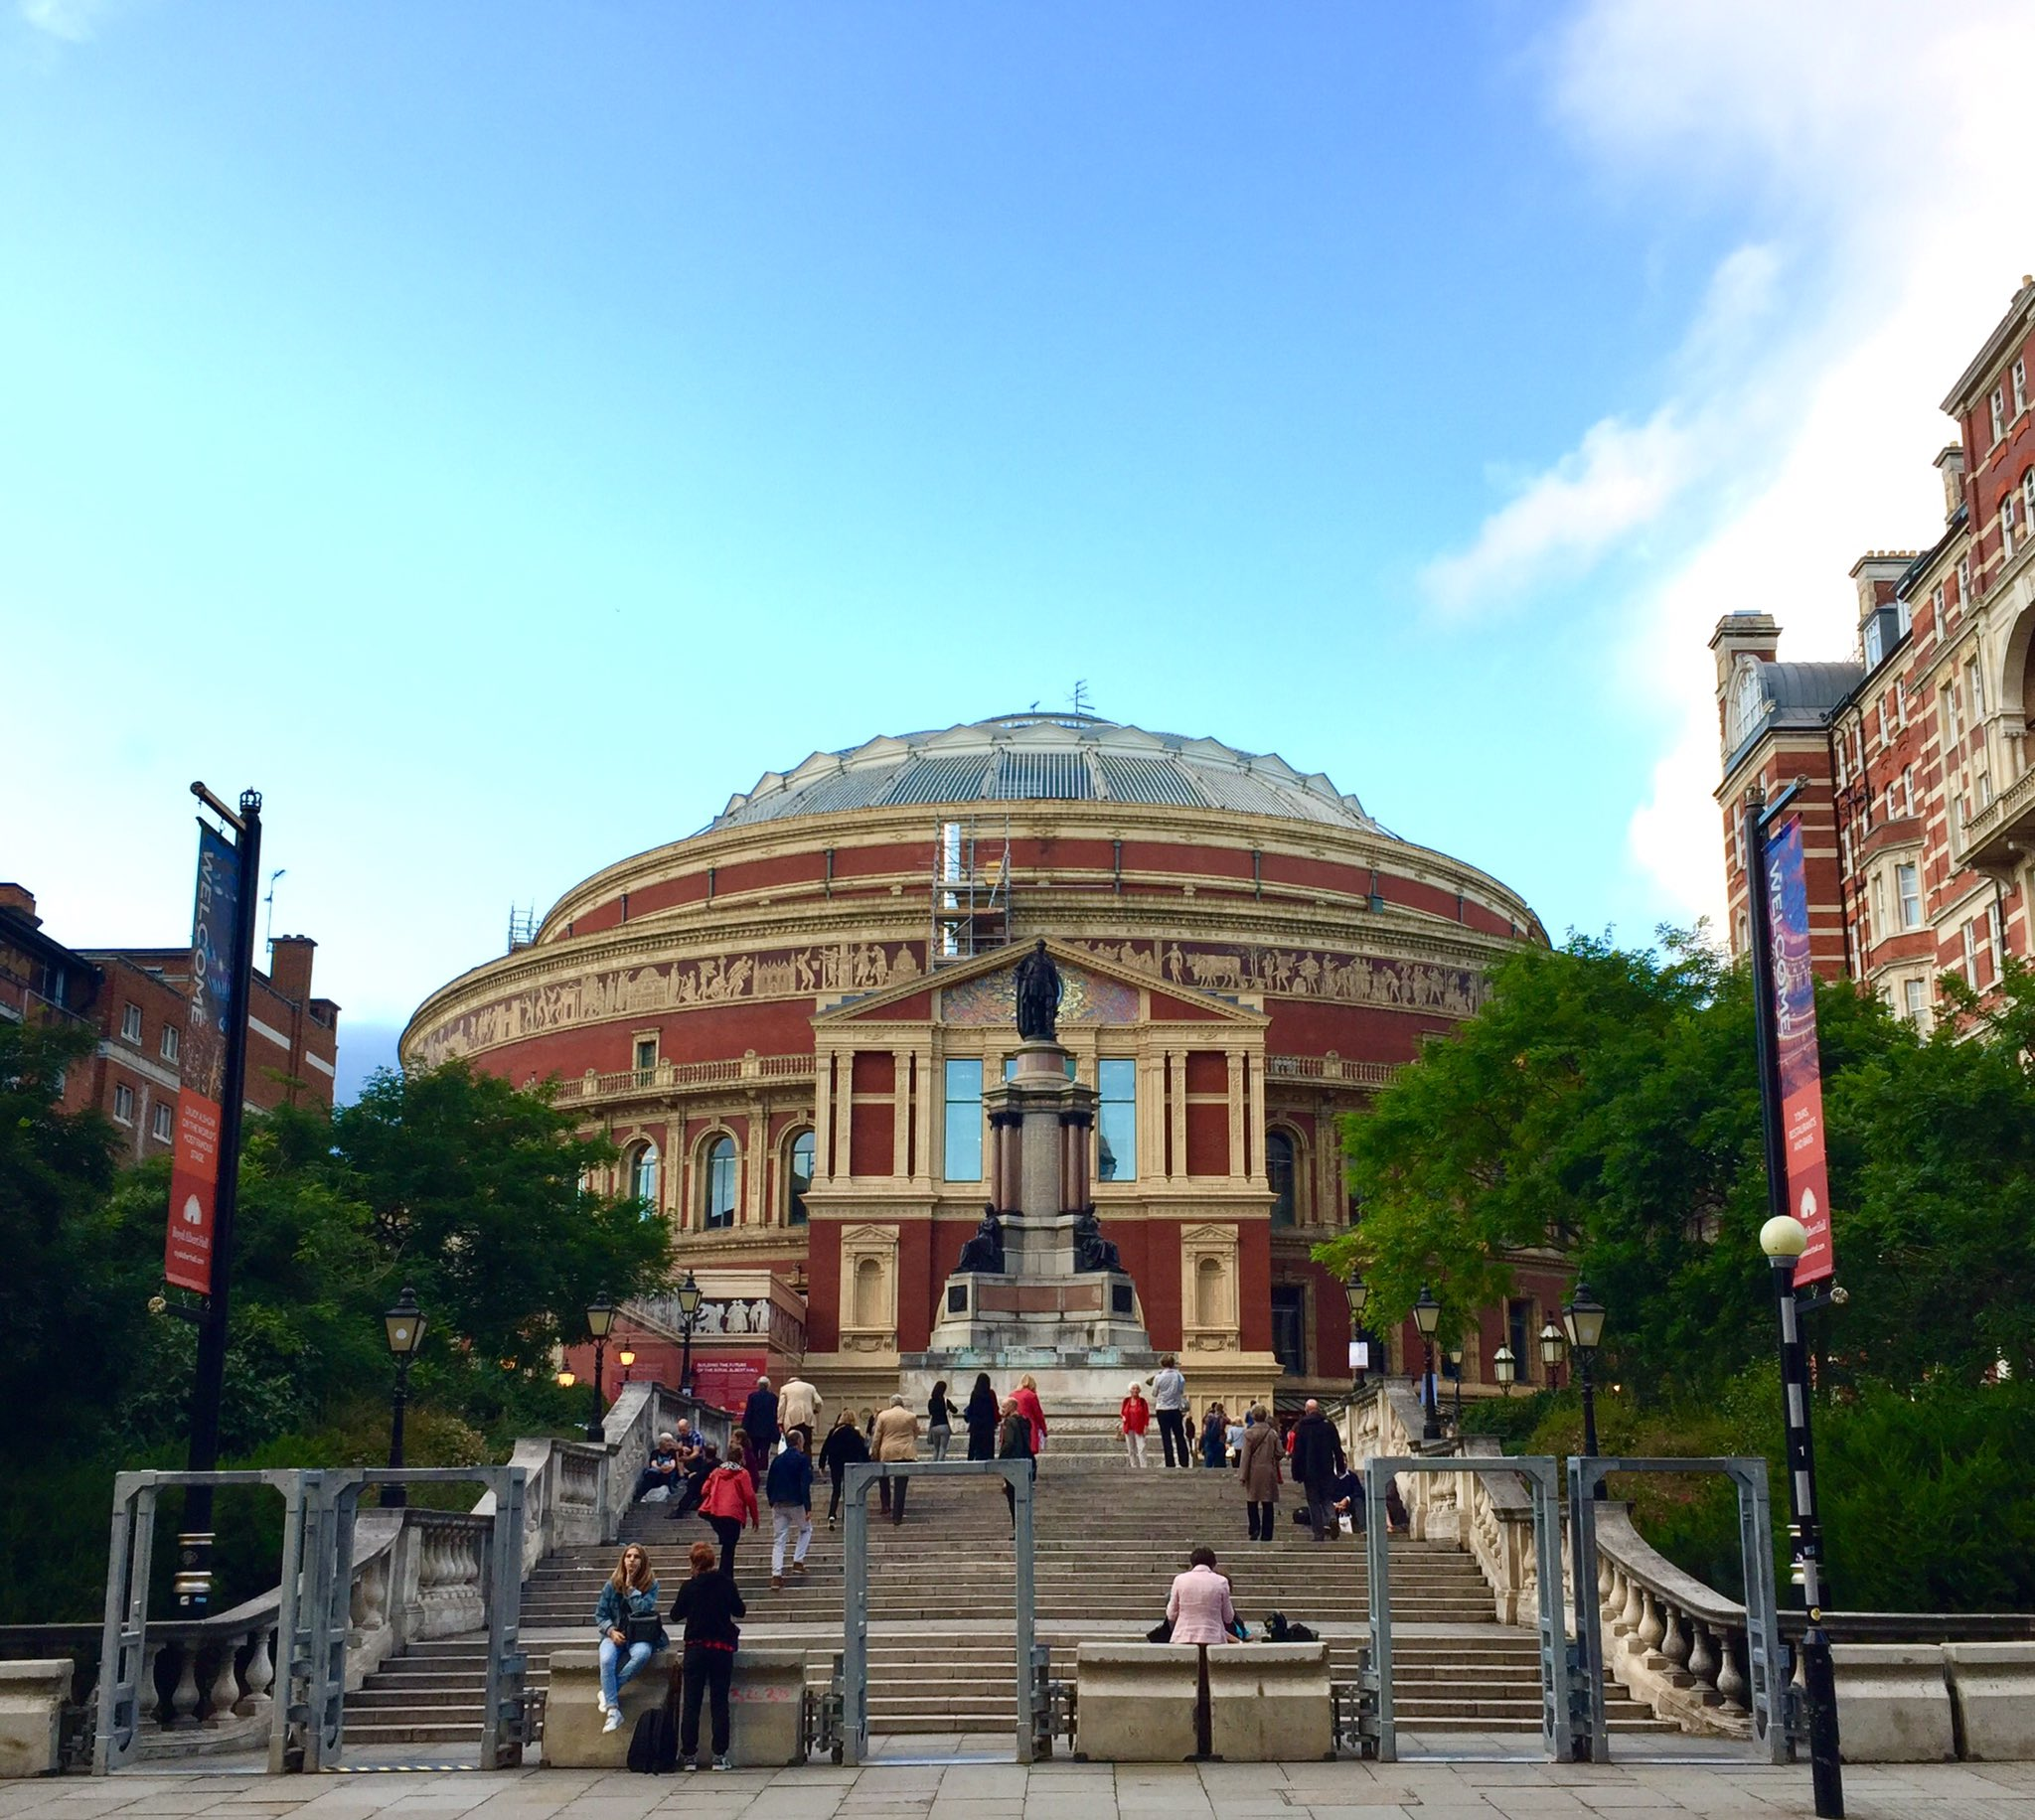 Hello Twitter please enjoy this photo I took of the Royal Albert Hall. #London https://t.co/1OwLAdfutt